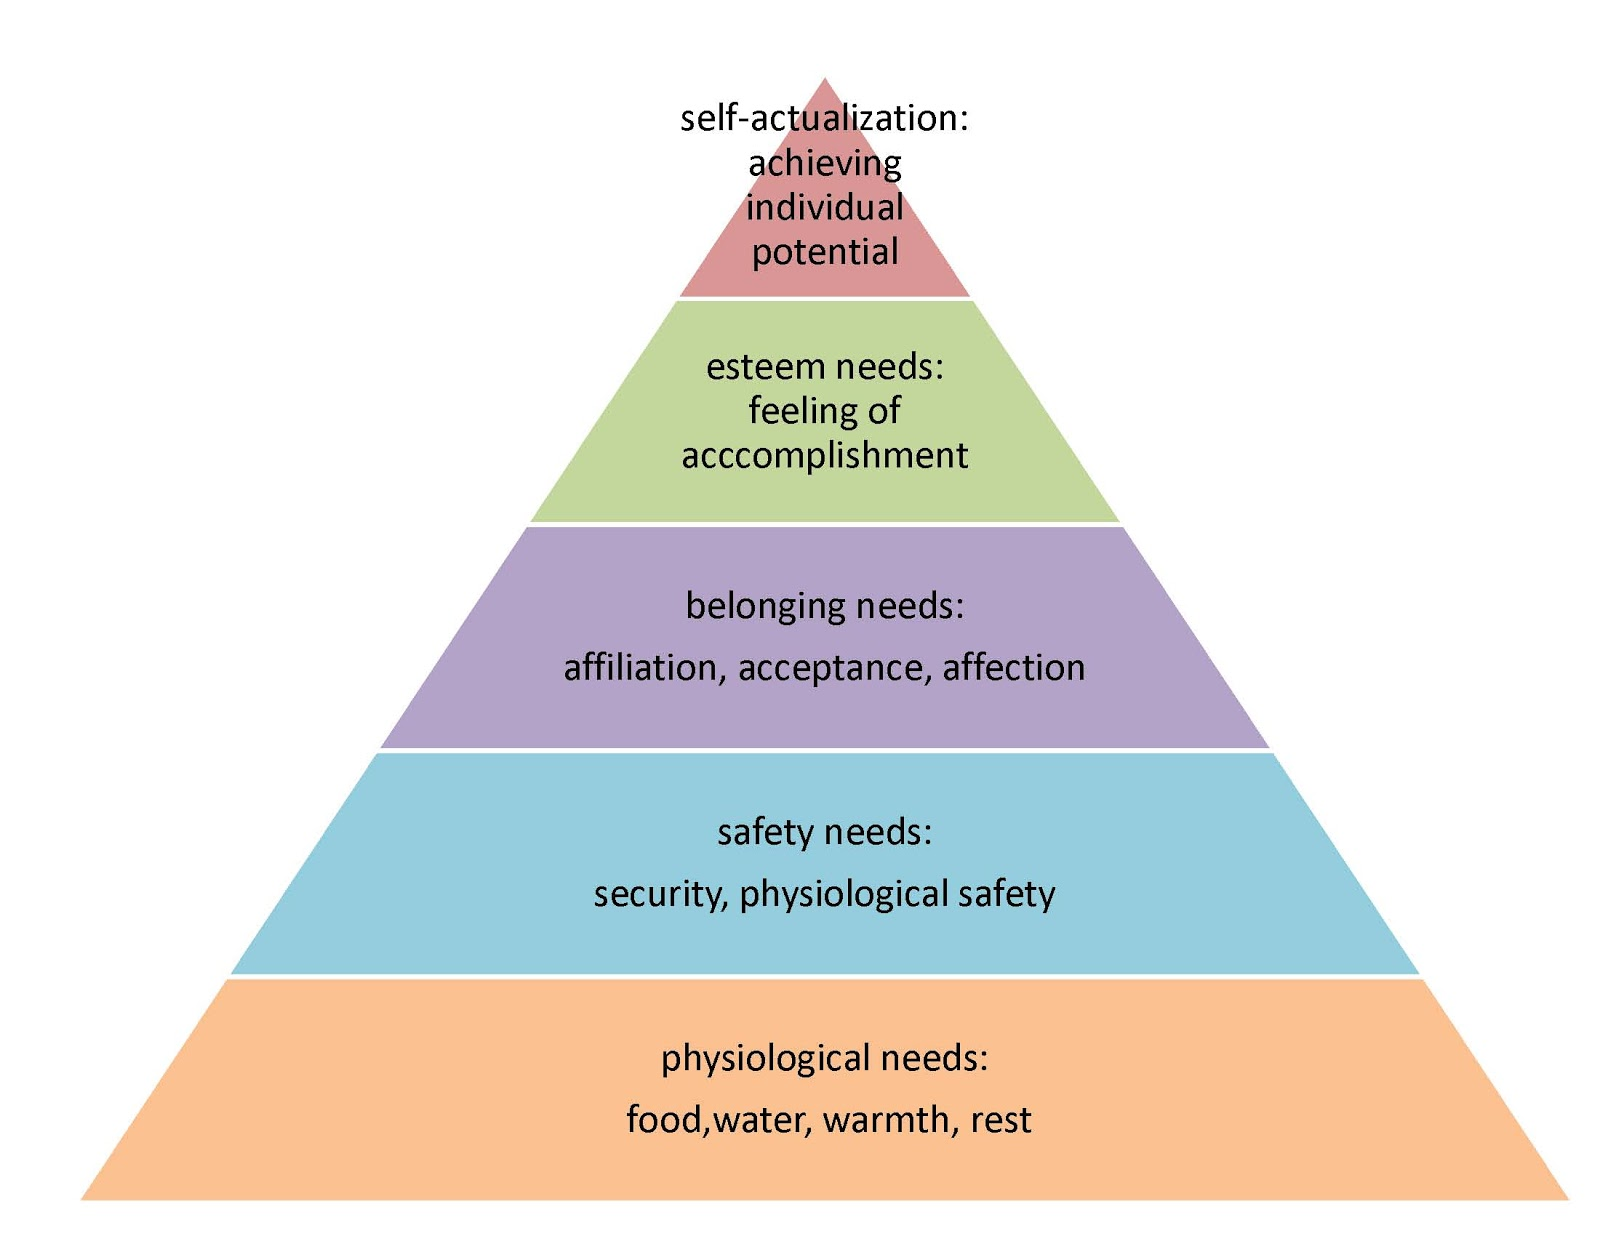 maslow hierrachy In his influential paper of 1943, a theory of human motivation, the american psychologist abraham maslow proposed that healthy human beings have a certain number of needs, and that these needs are arranged in a hierarchy, with some needs (such as physiological and safety needs) being more primitive or basic than.